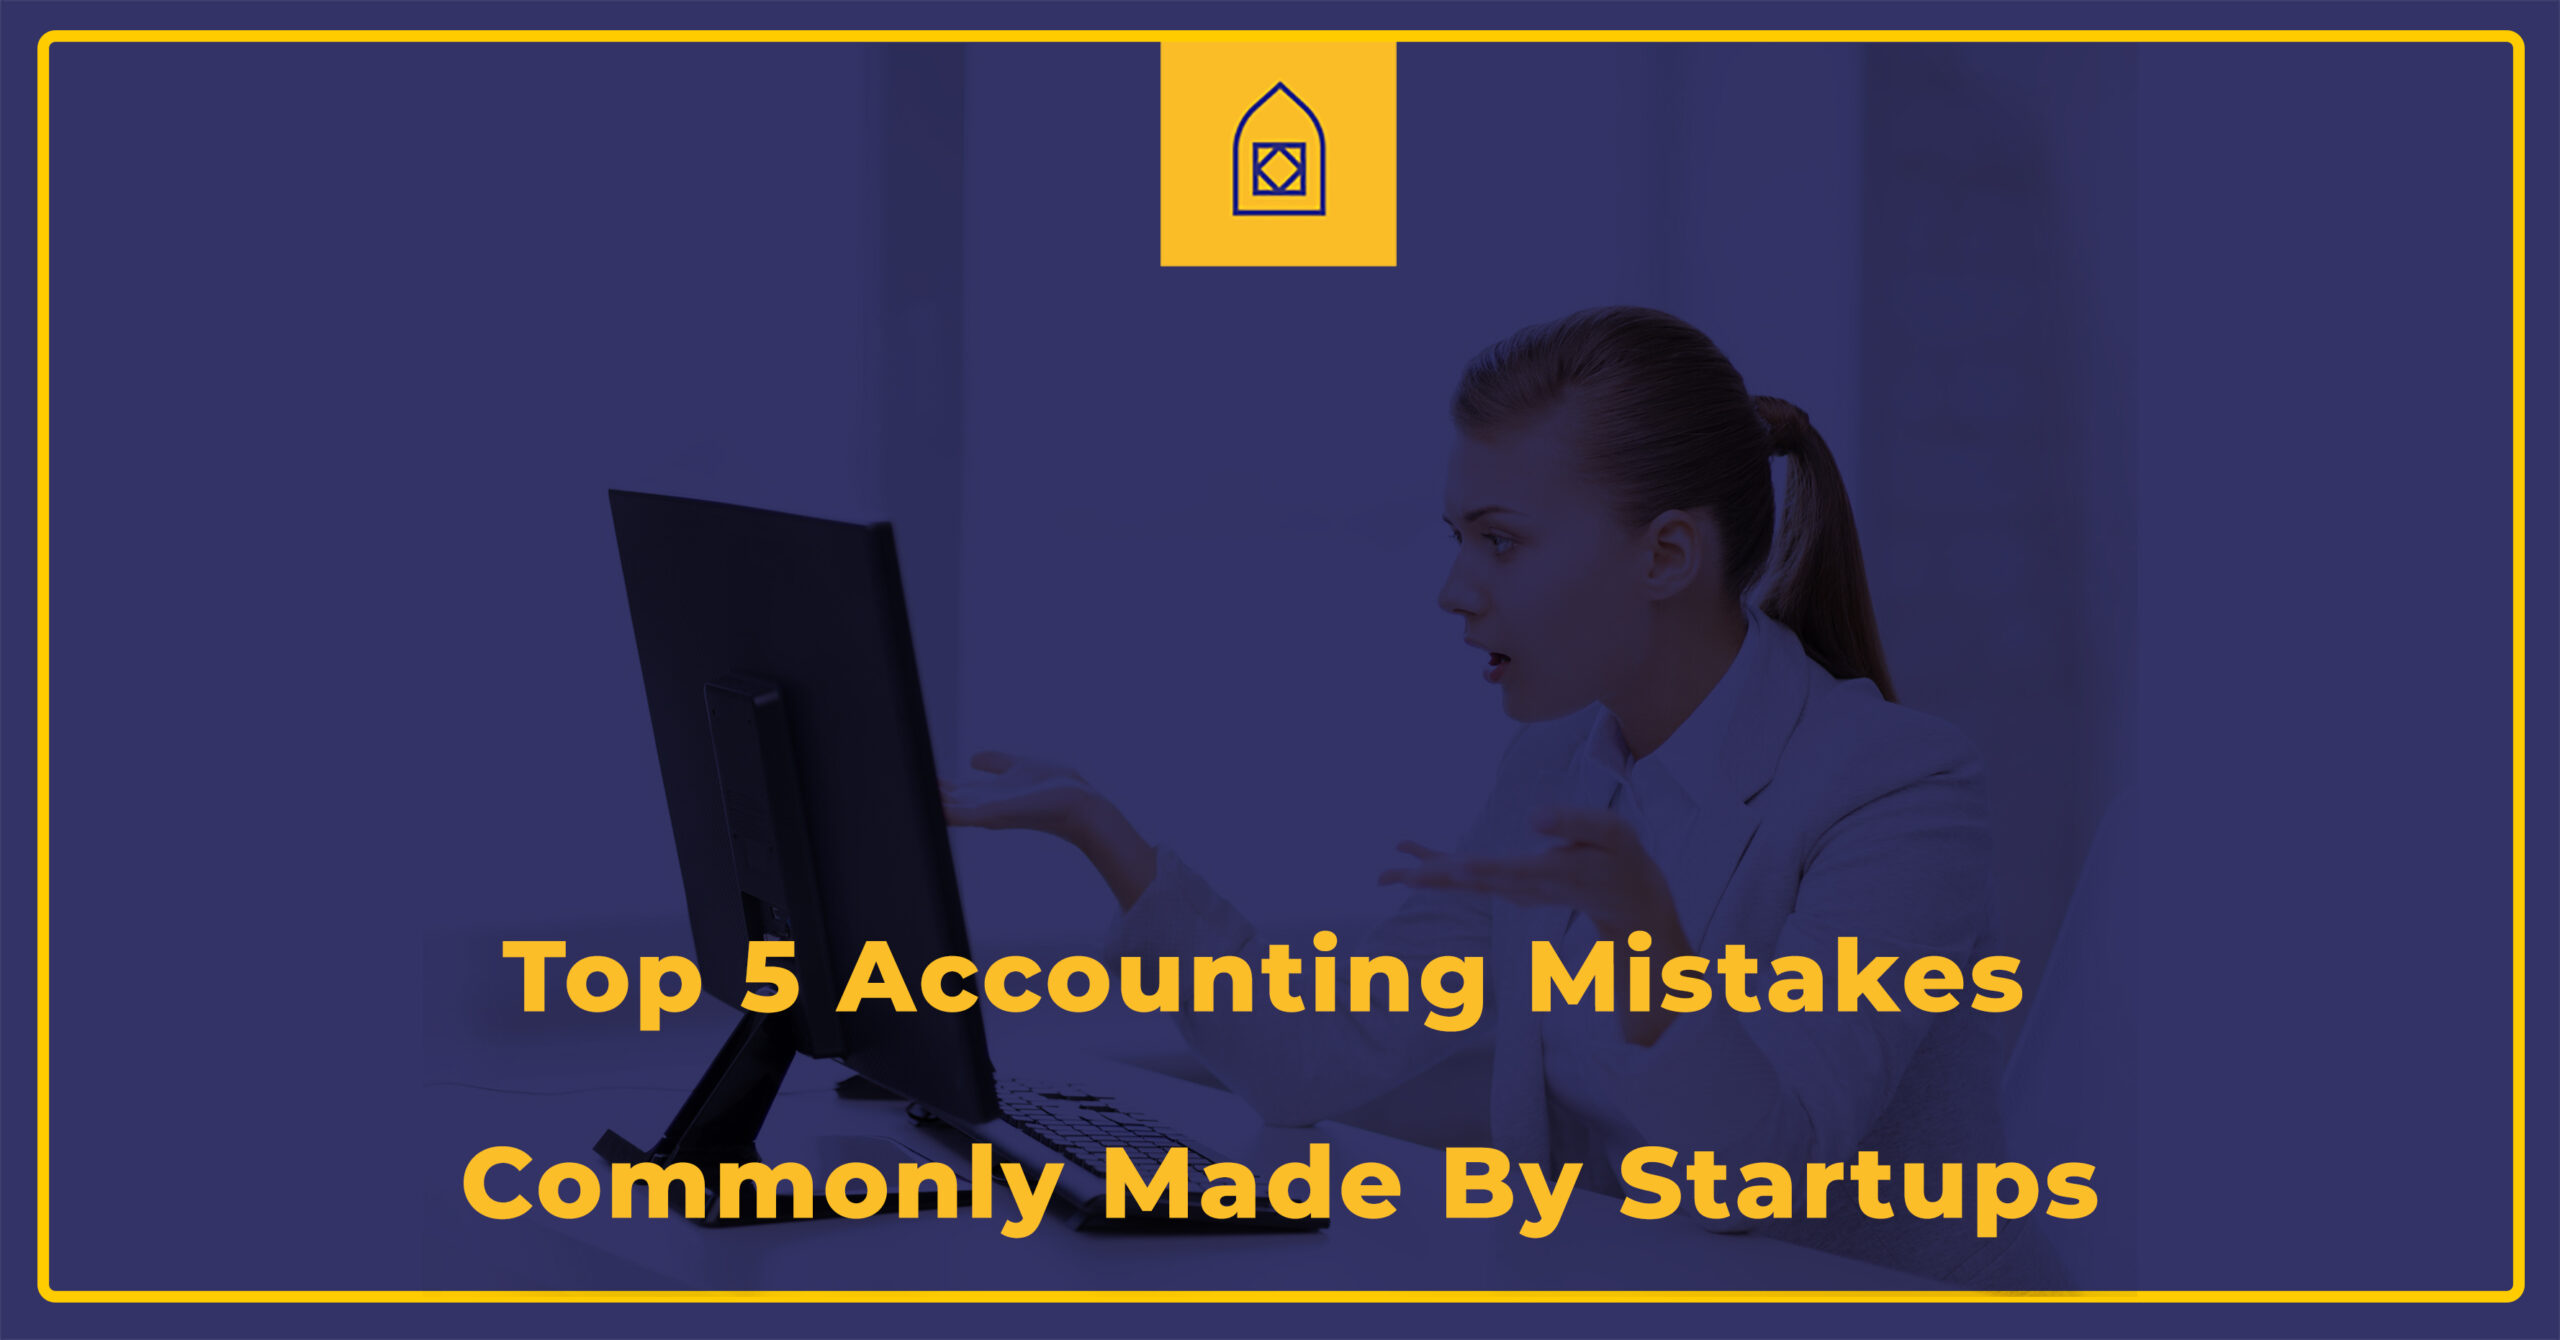 Top 5 Accounting Mistakes Commonly Made By Startups